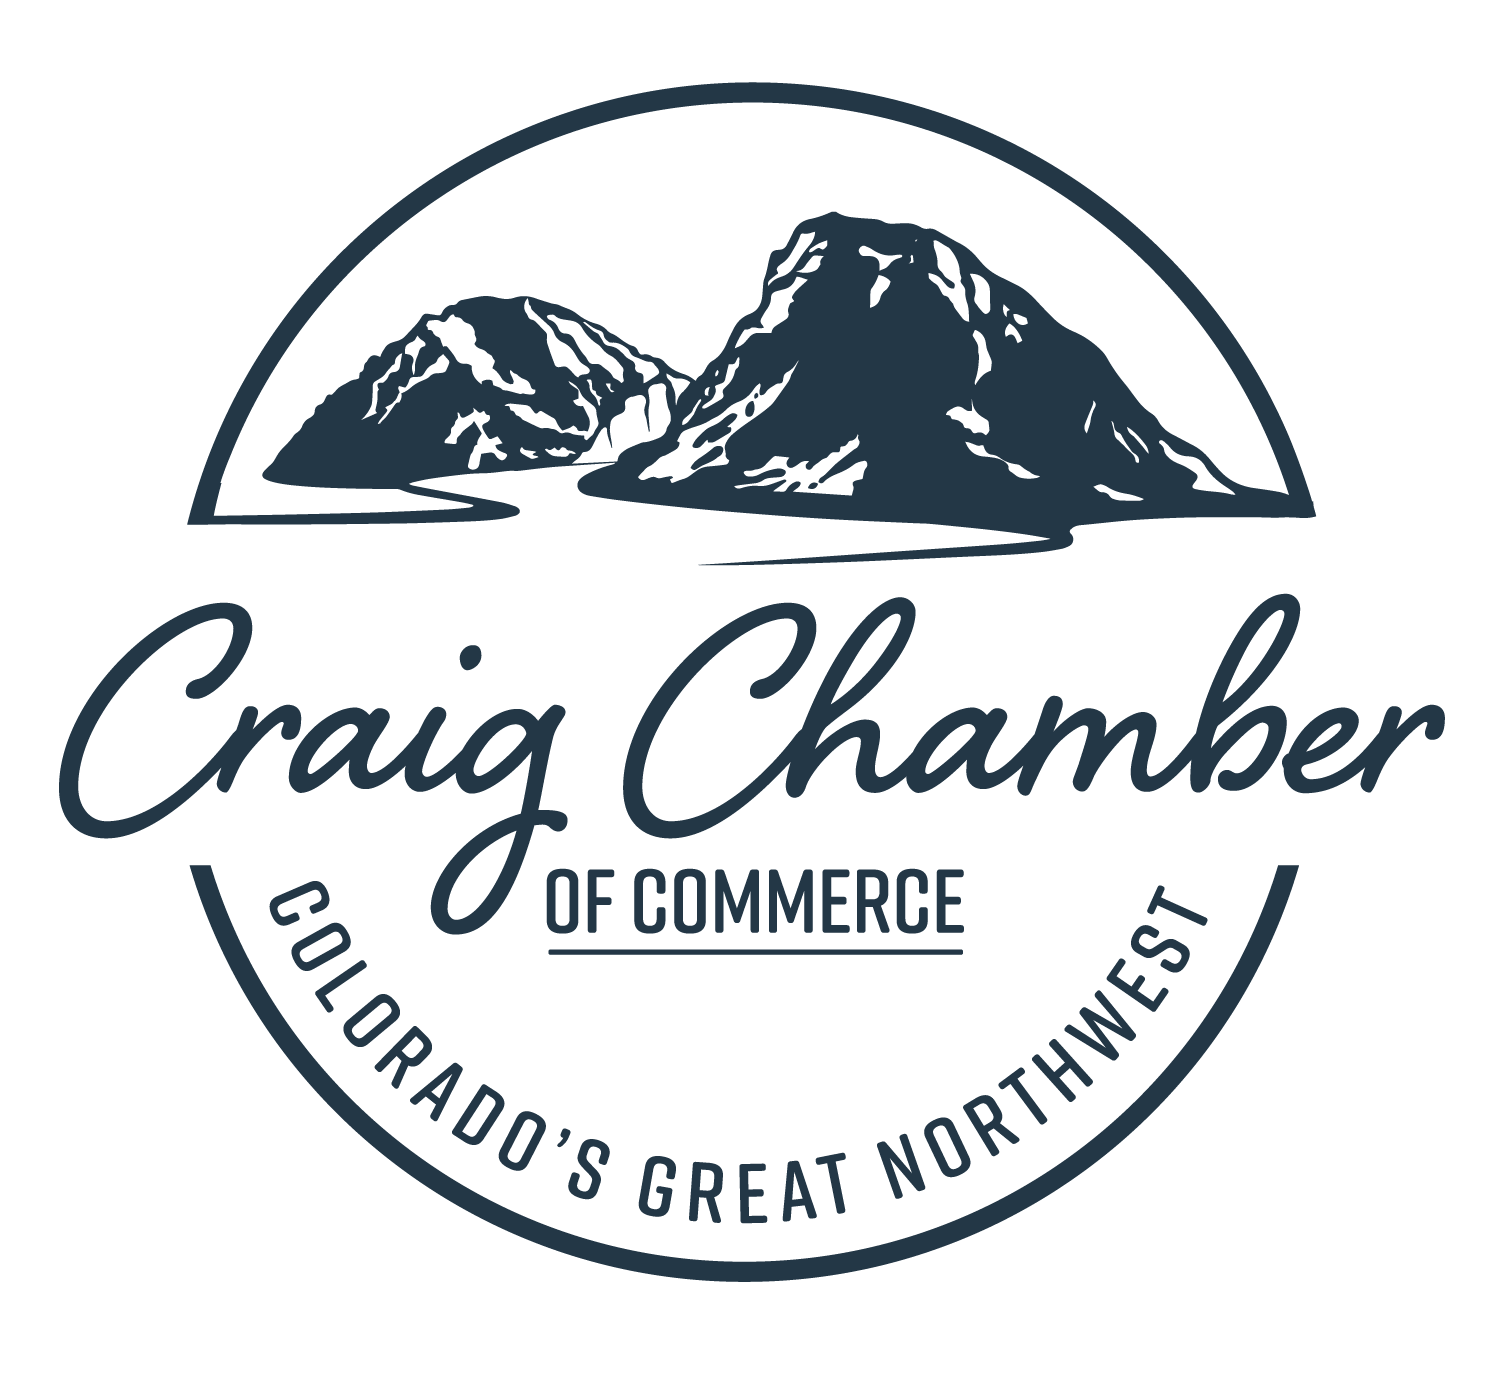 Craig Chamber of Commerce